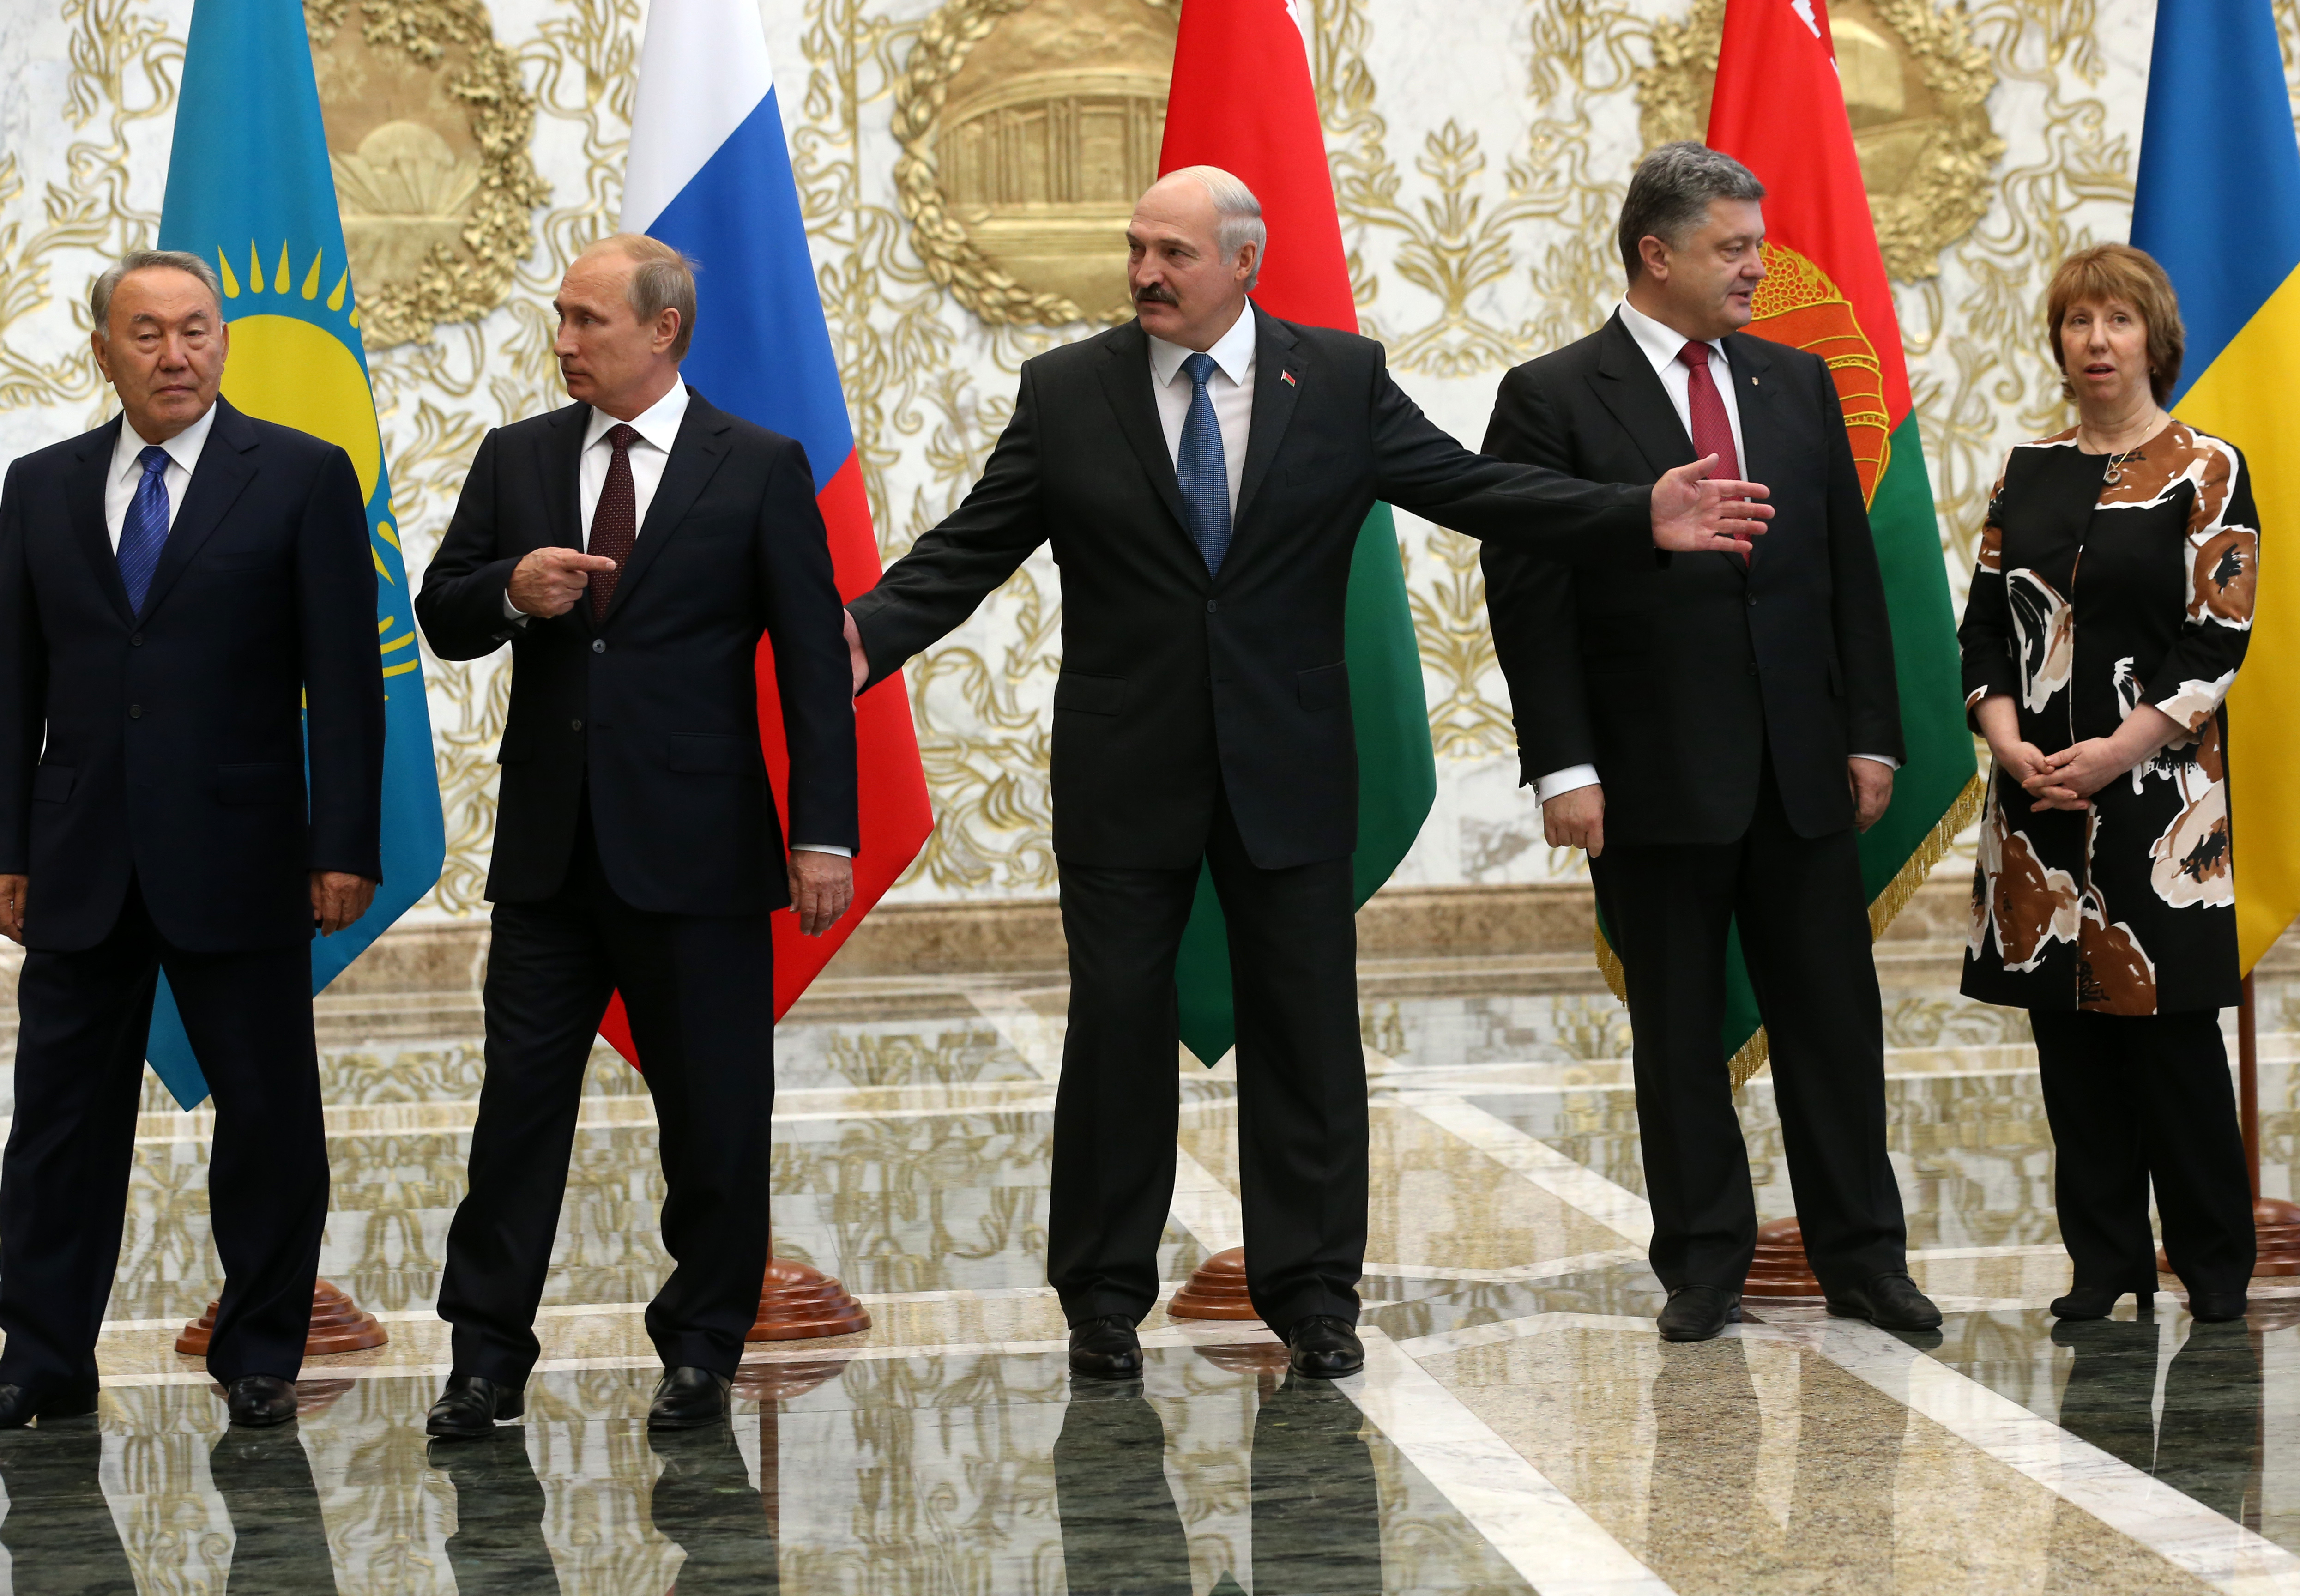 Vladimir Putin Attends EU Summit In Minsk With Ukrainian President